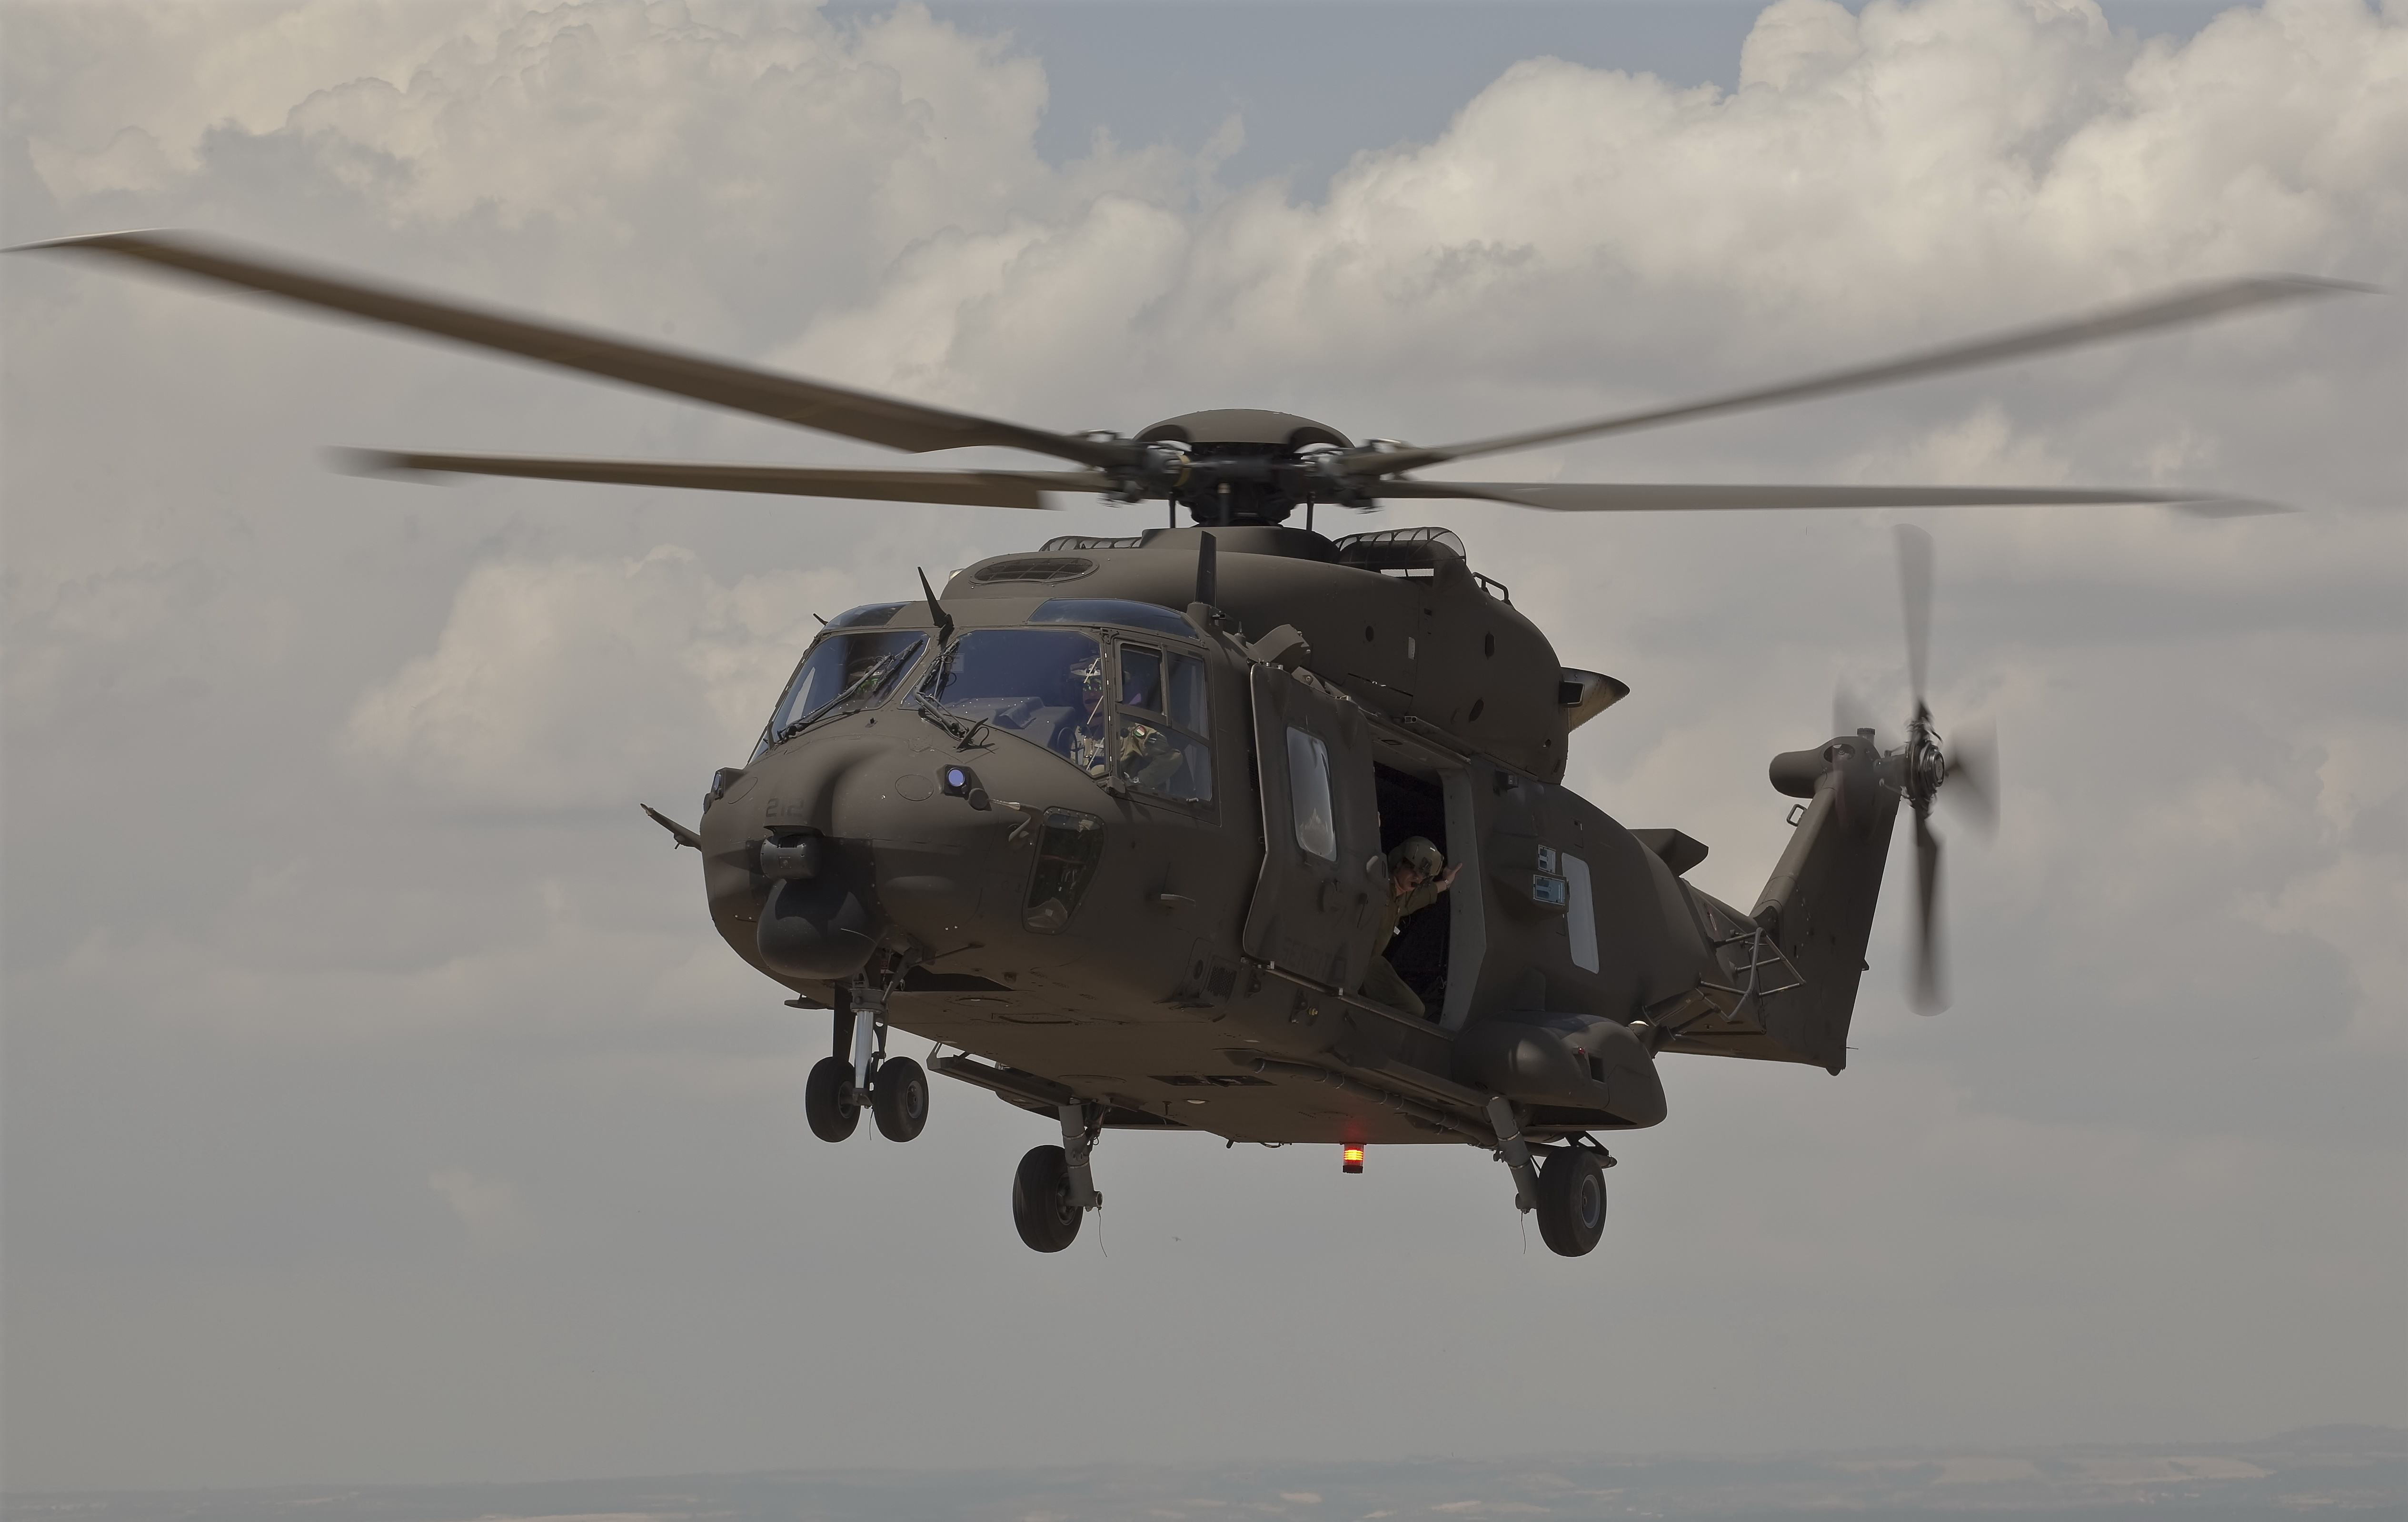 Military Helicopter 4k Hd Desktop Wallpaper For 4k Ultra: NHIndustries NH90 4k Ultra HD Wallpaper And Background